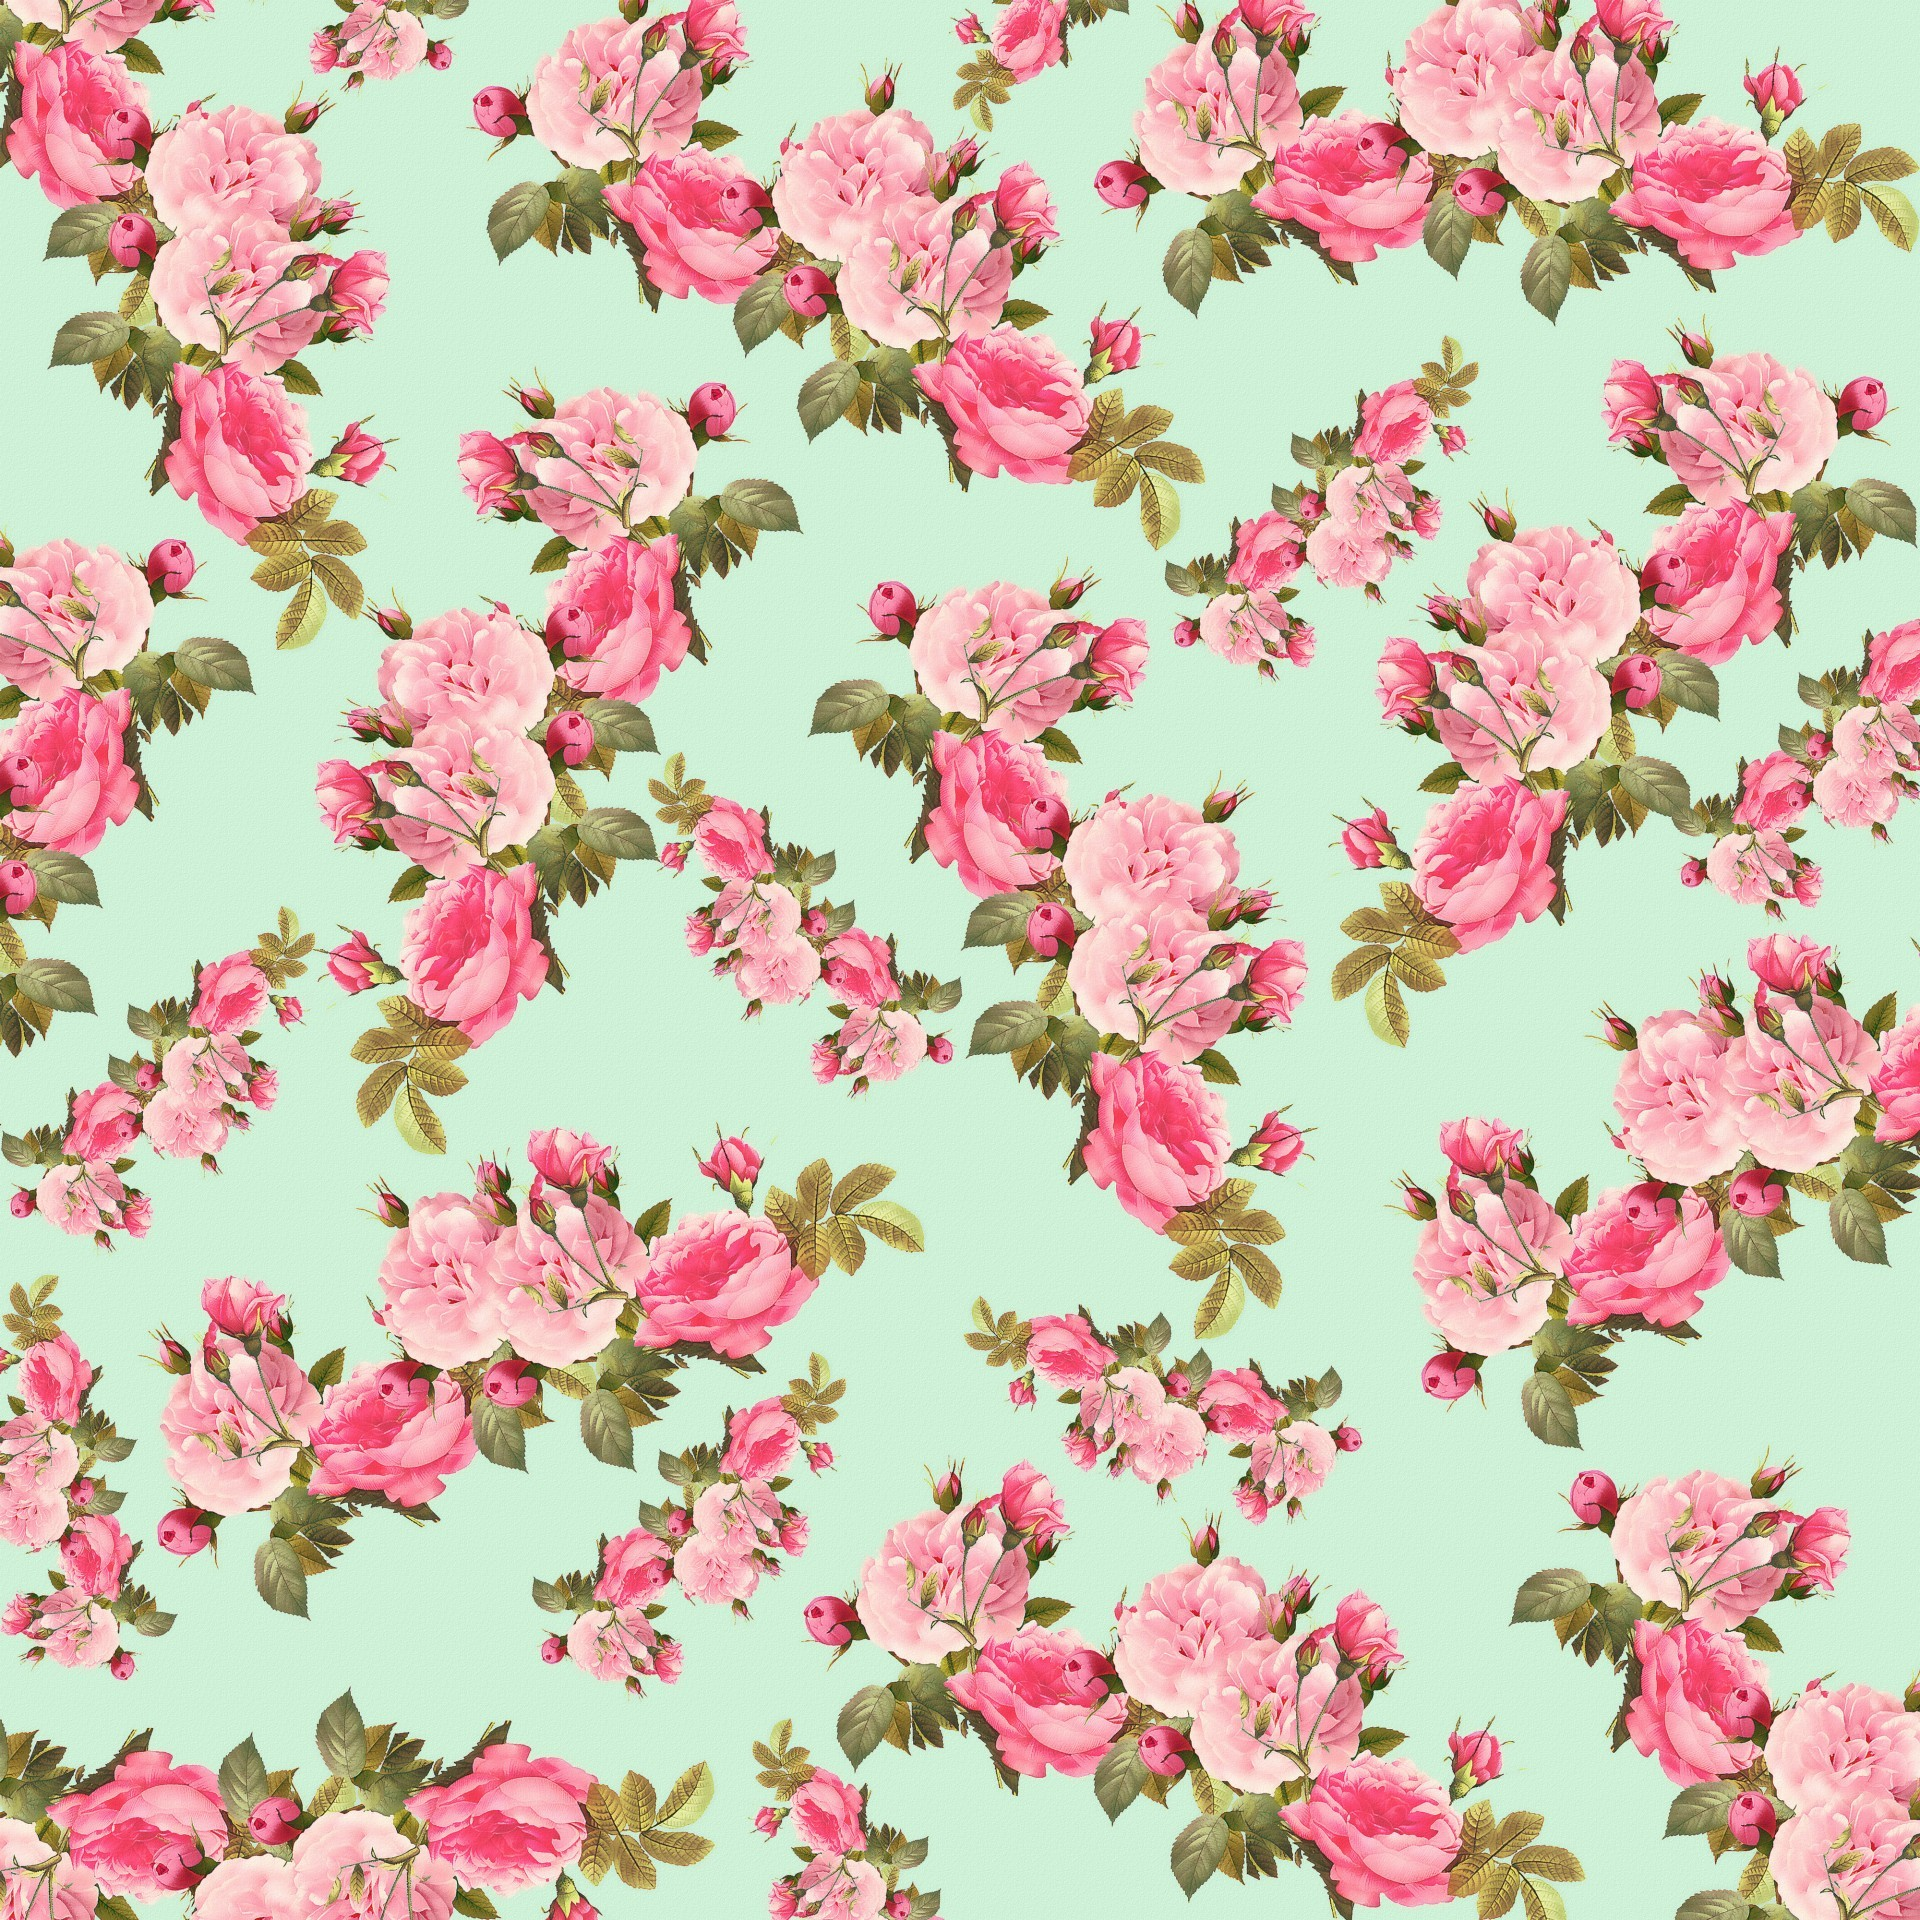 Computer Wallpaper Floral: Floral Background ·① Download Free High Resolution